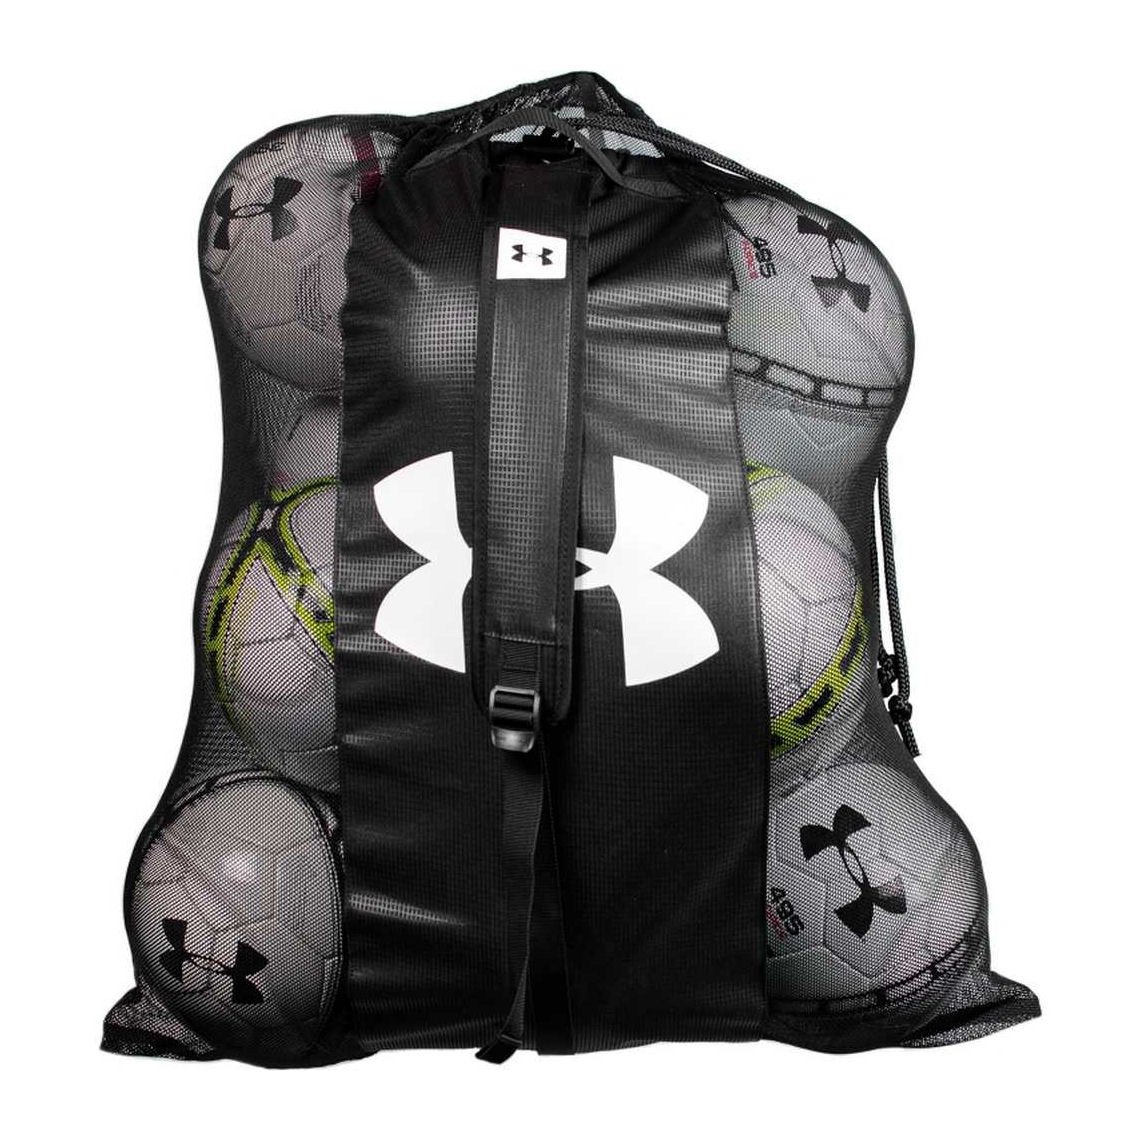 4d7e1e06 Under Armour Hauler Mesh Ball Bag, Soccer, Football, Basketball UASB-MBB